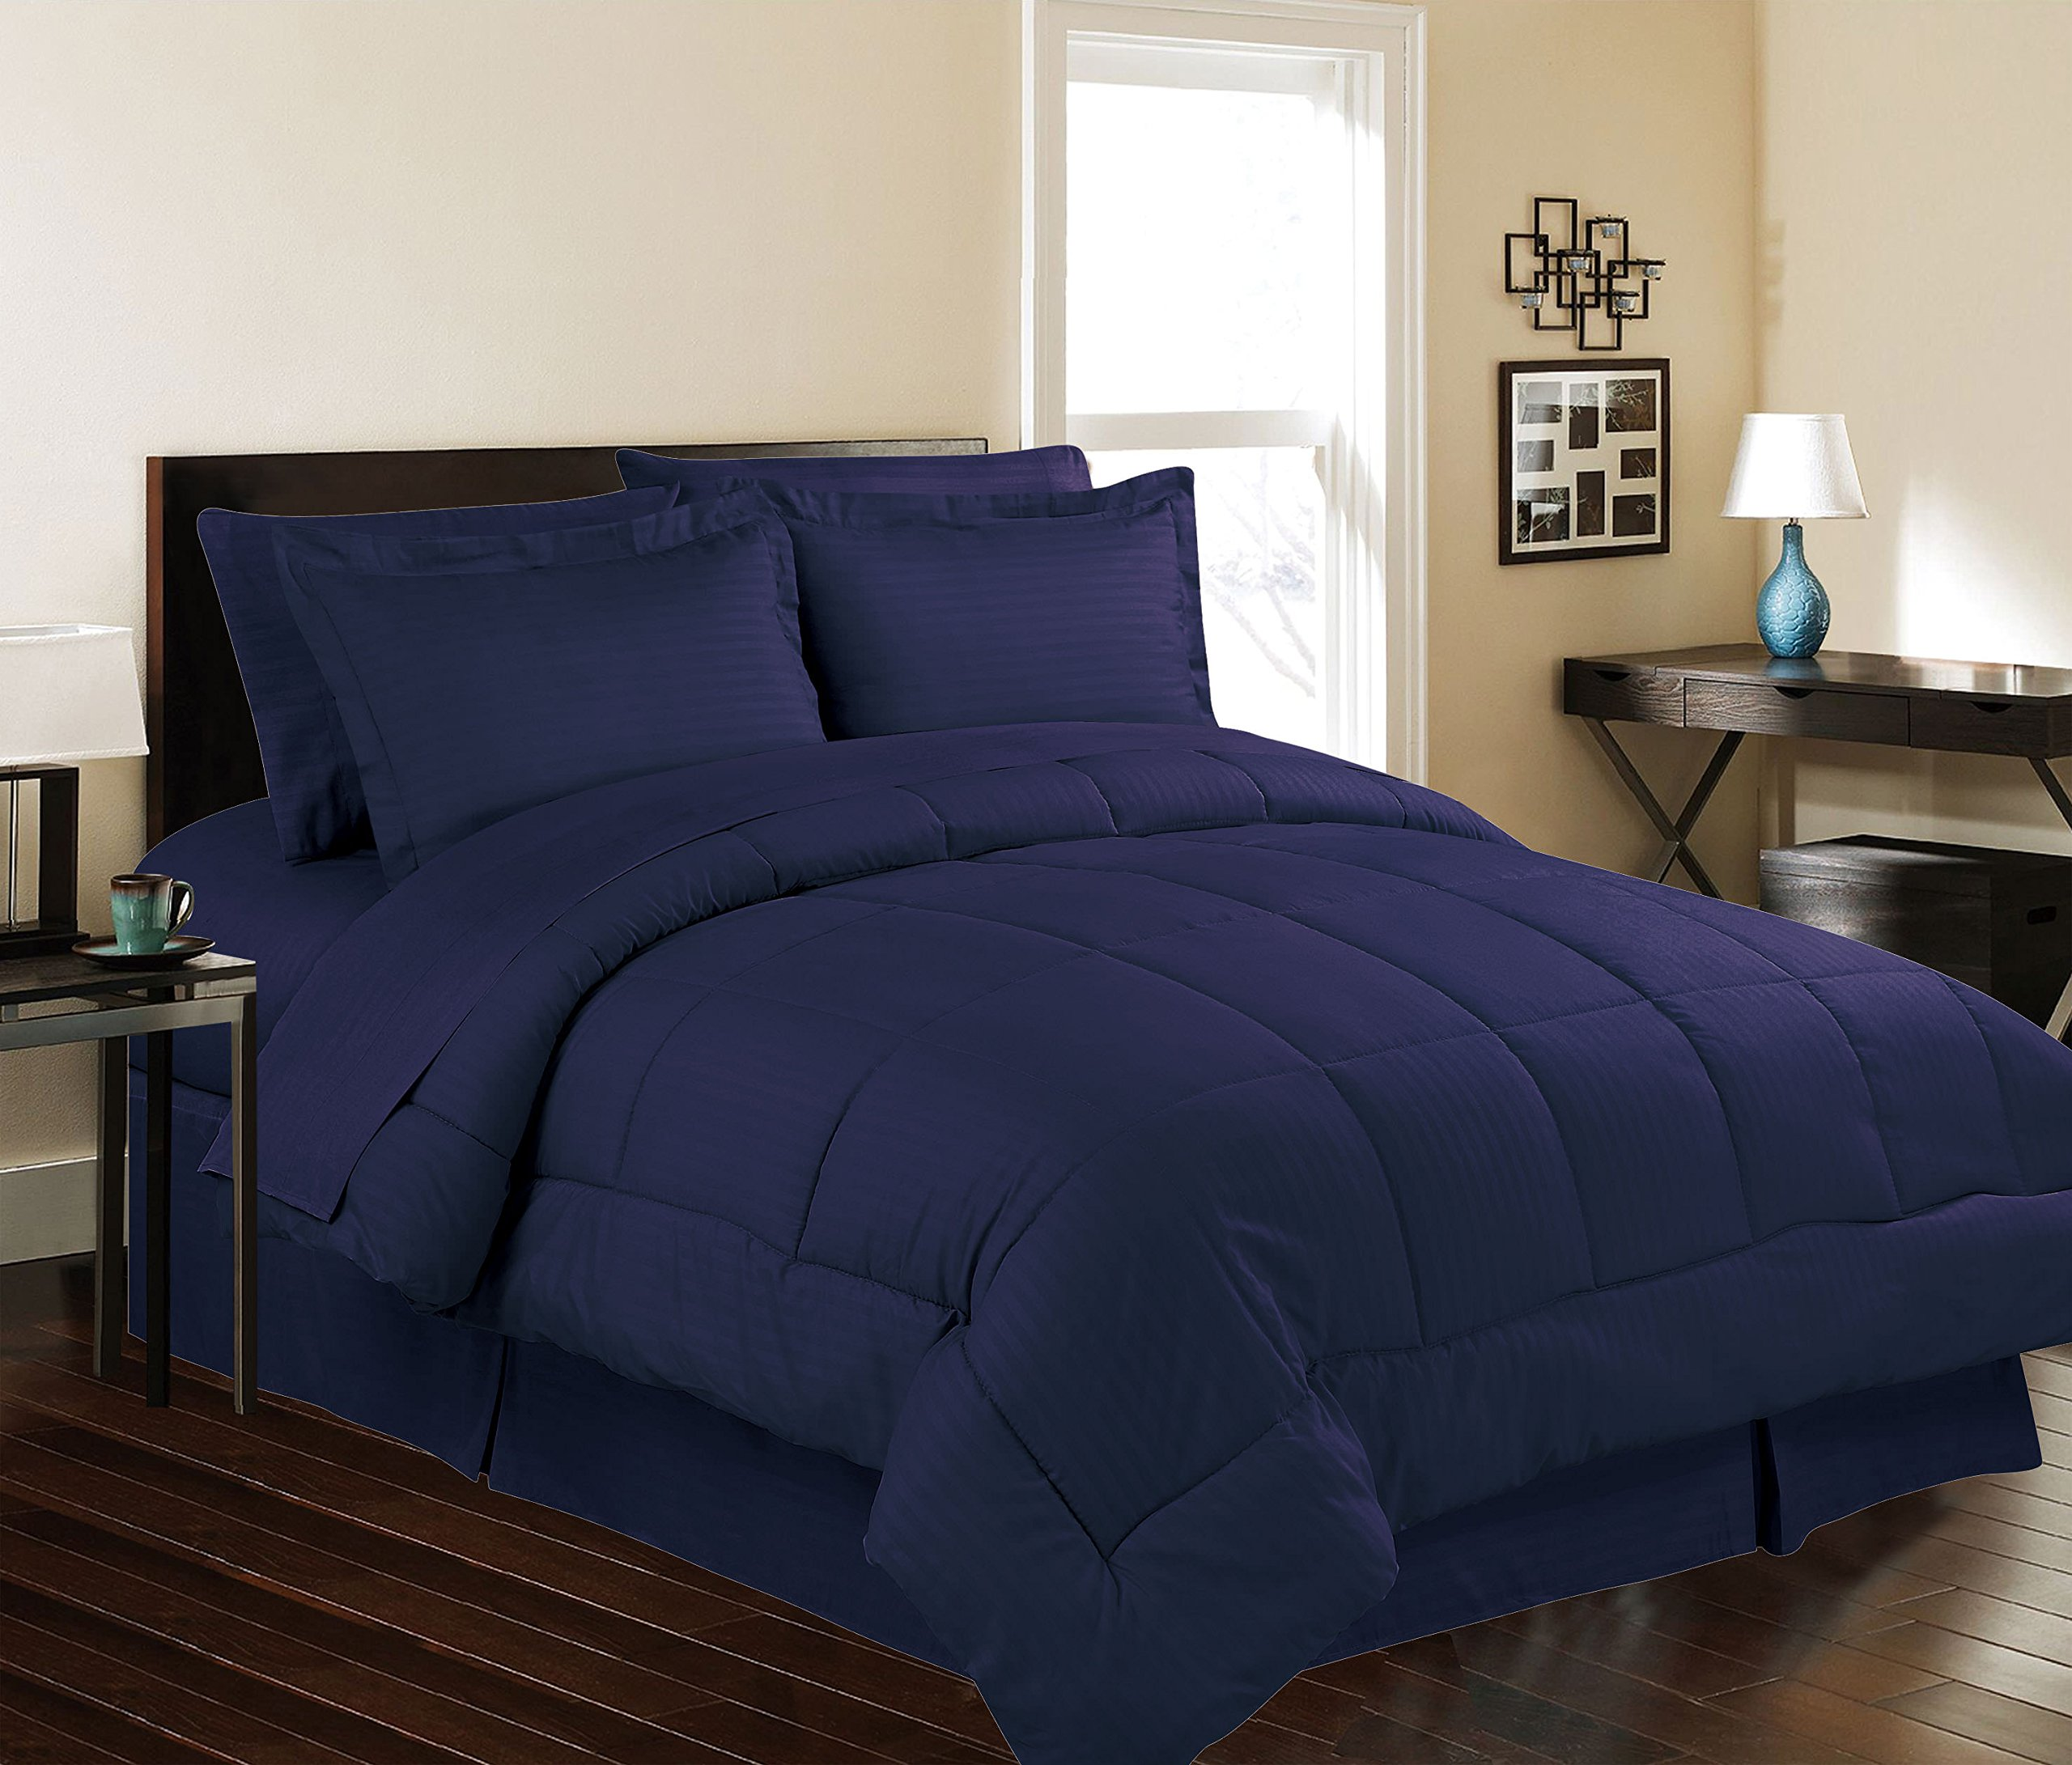 Décor&More Hotel Collection Queen Size 8 Piece Bed in a Bag Down Alternative Comforter Set - Navy